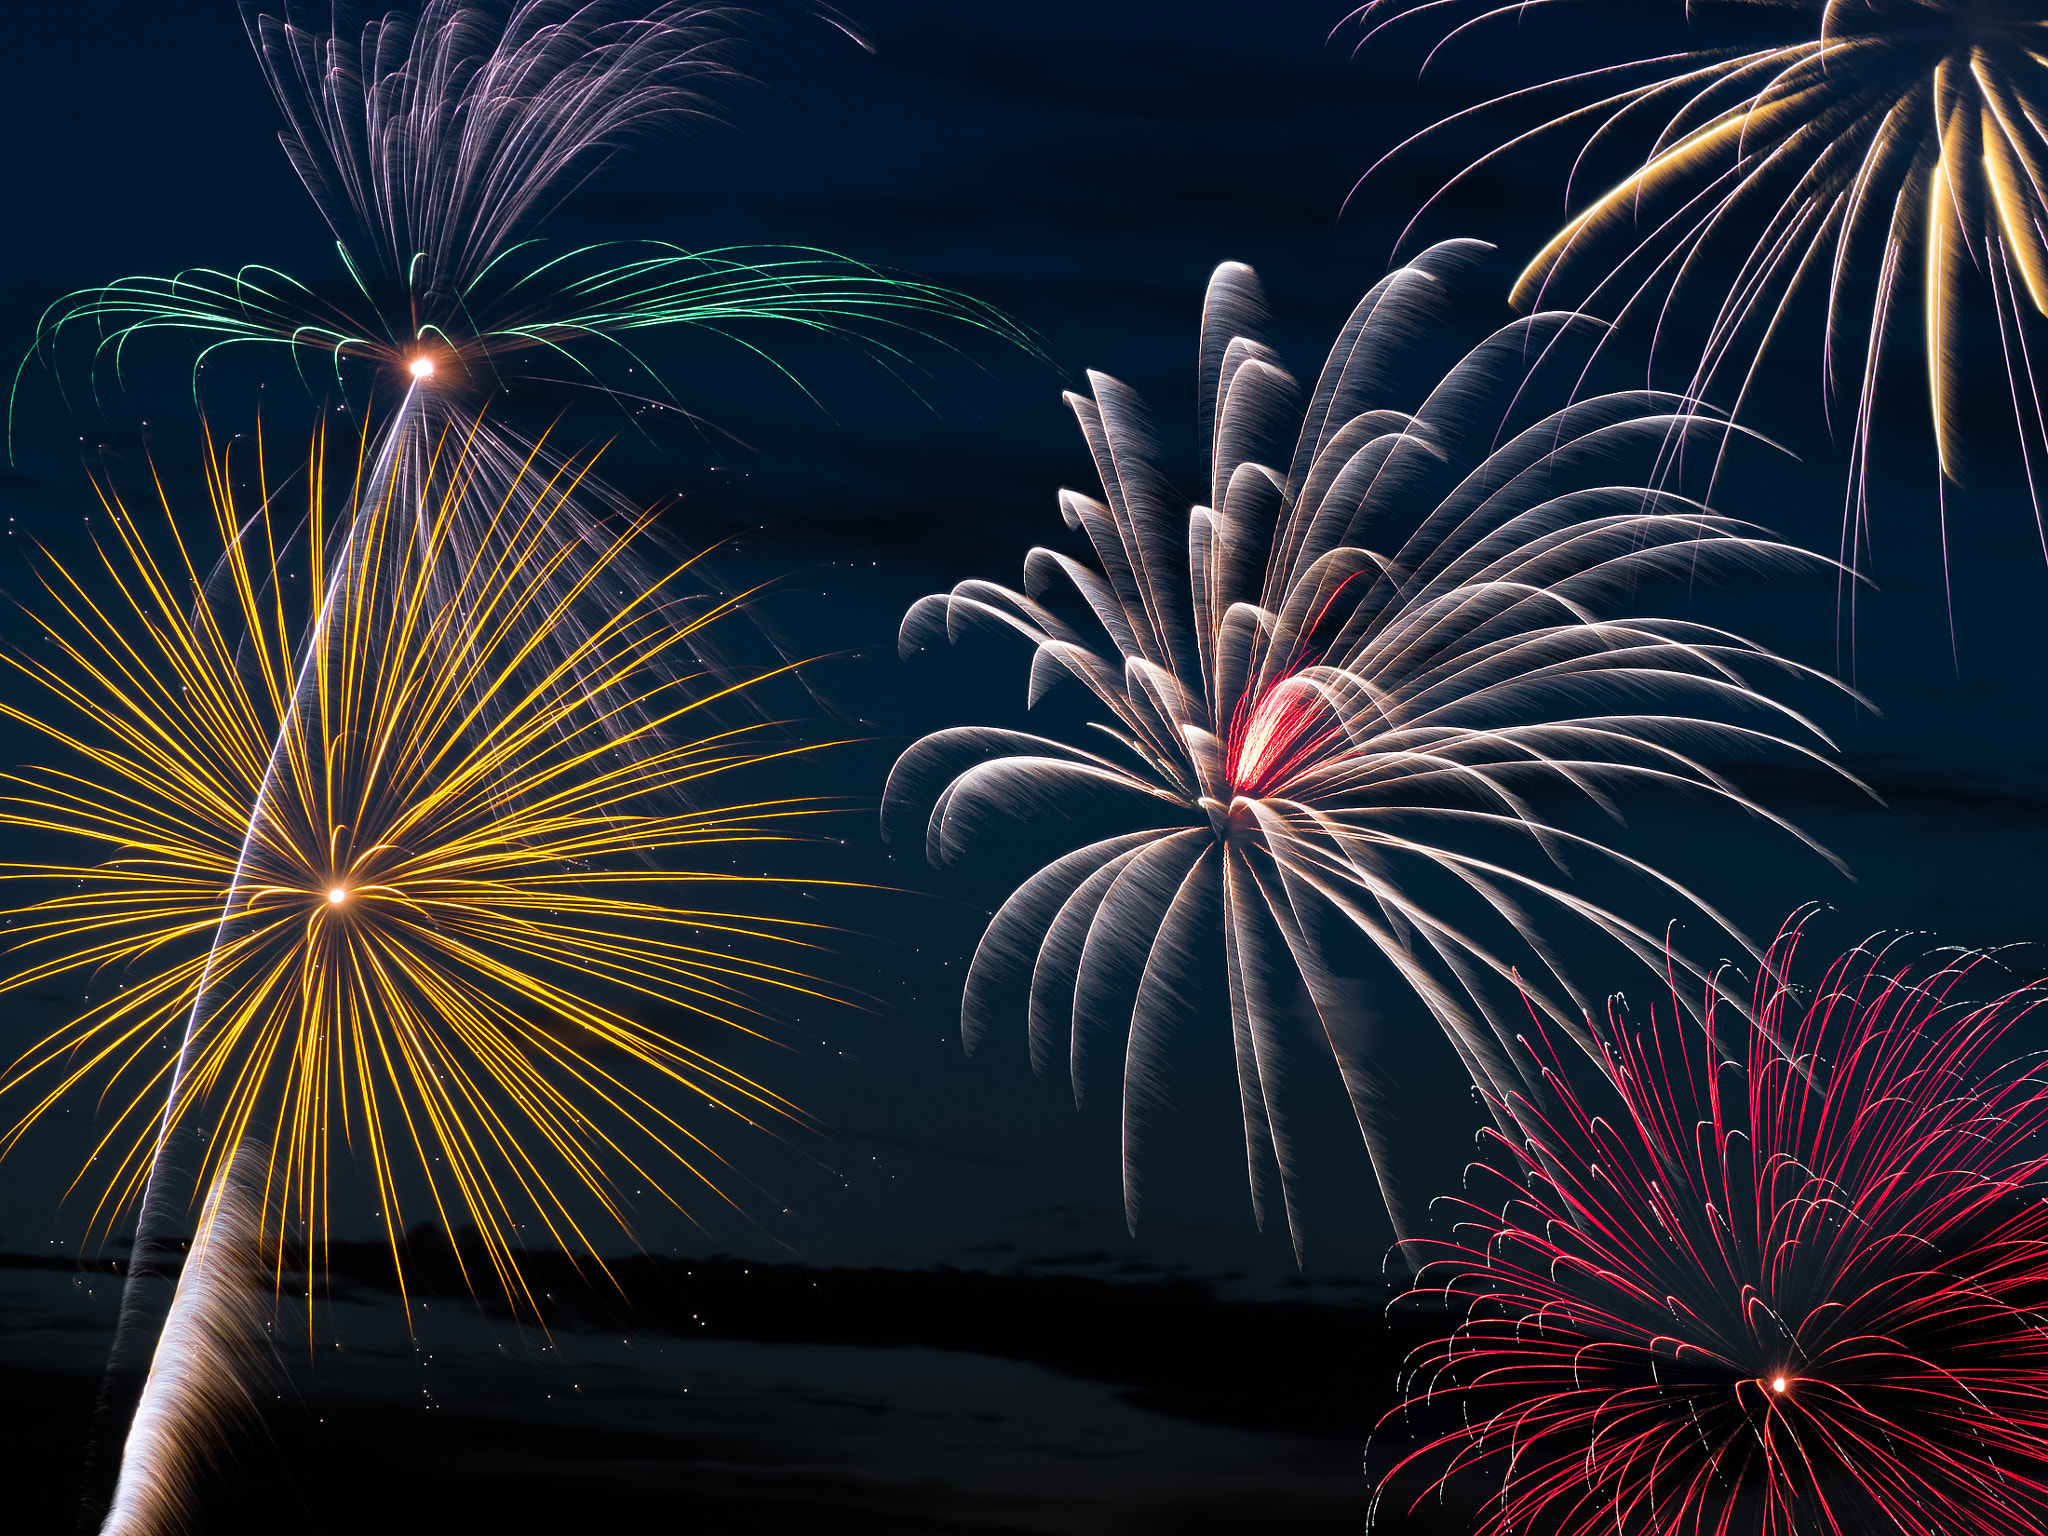 Photograph Pyrotechnic Extravaganza by Kenneth Keifer on 500px